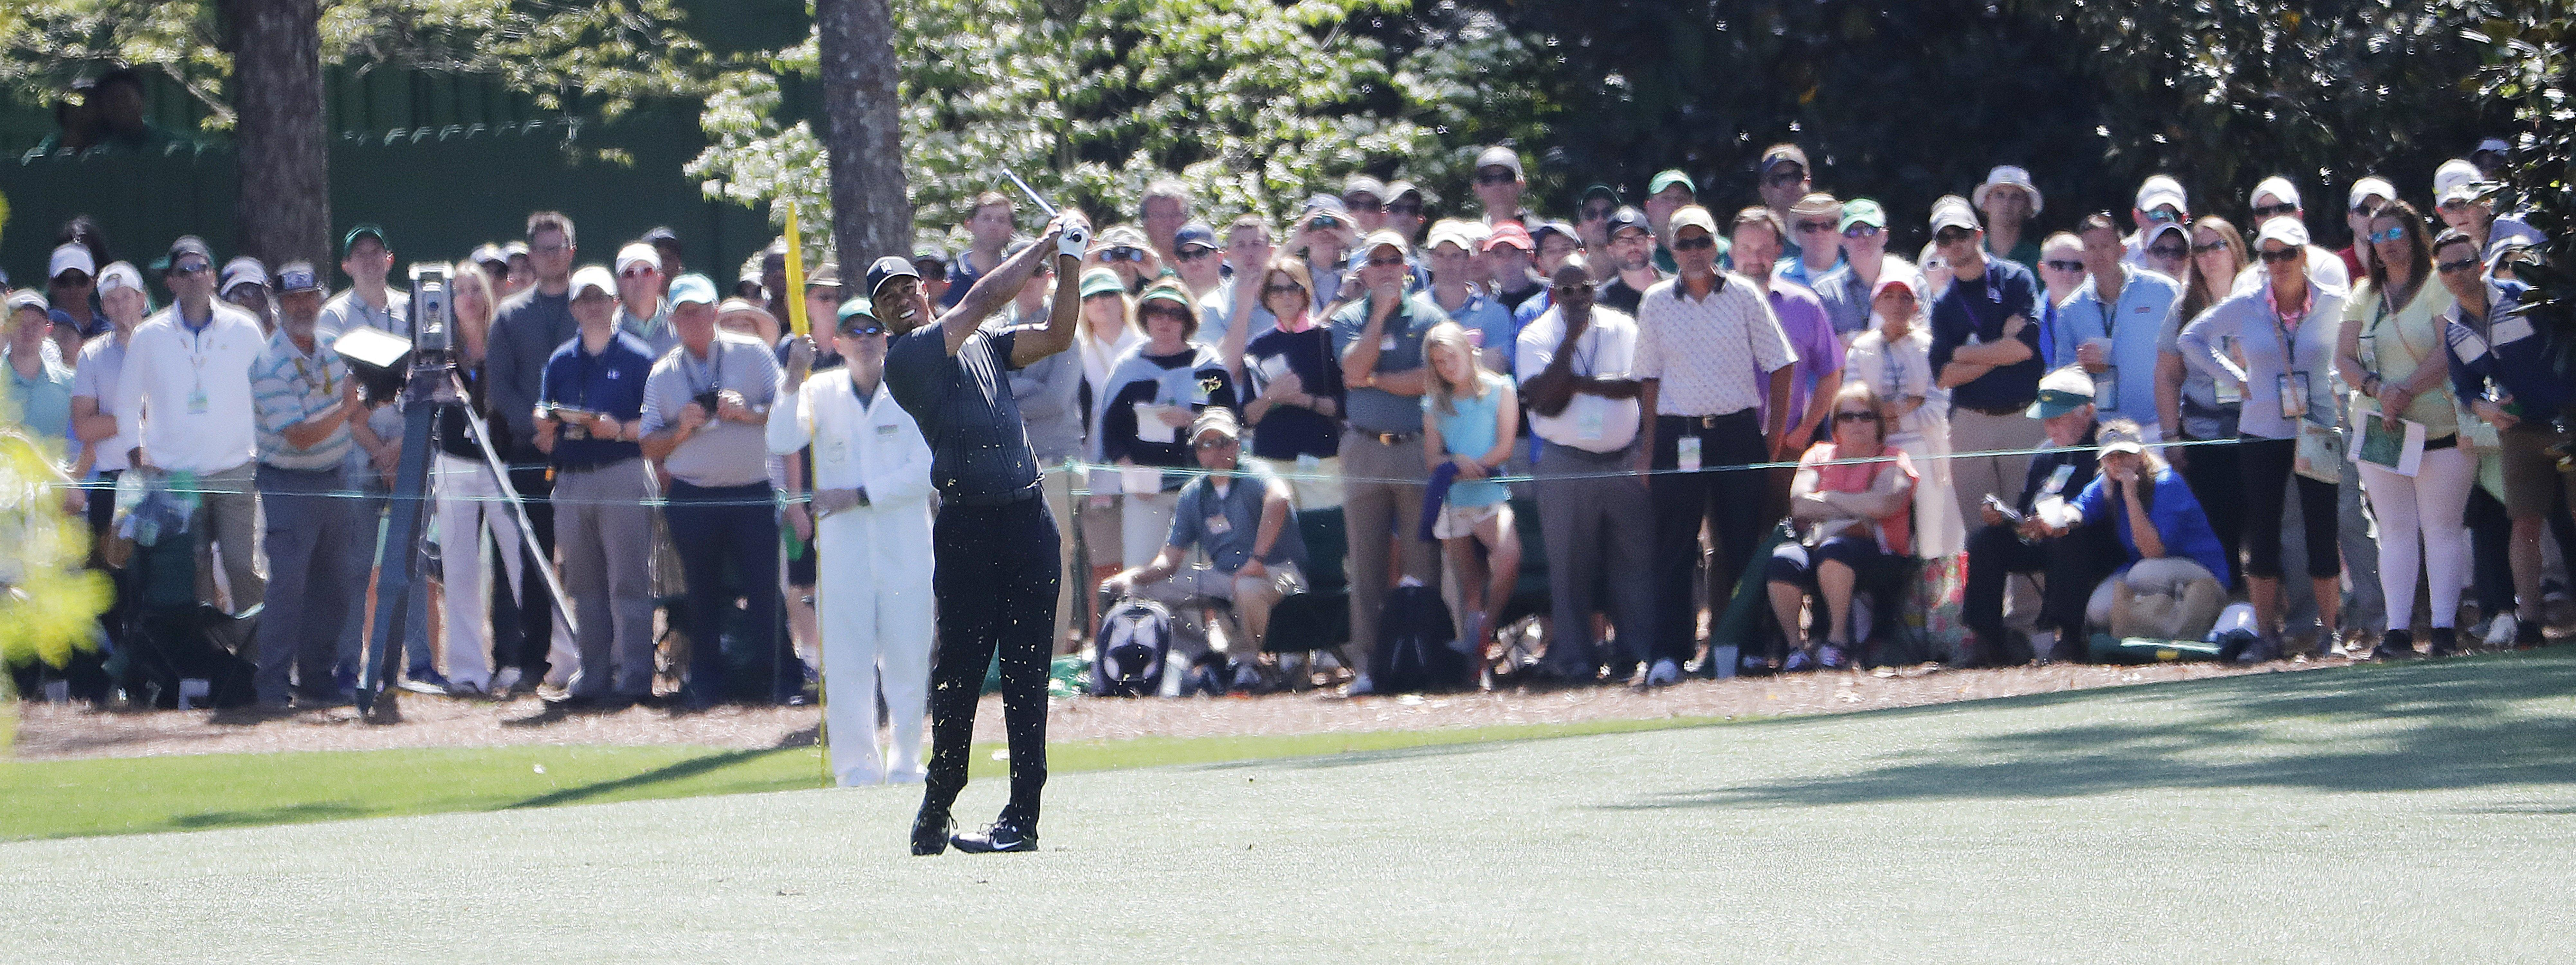 Tiger Woods was pleased with his scrambling on a day when he sprayed his ball into the spectators